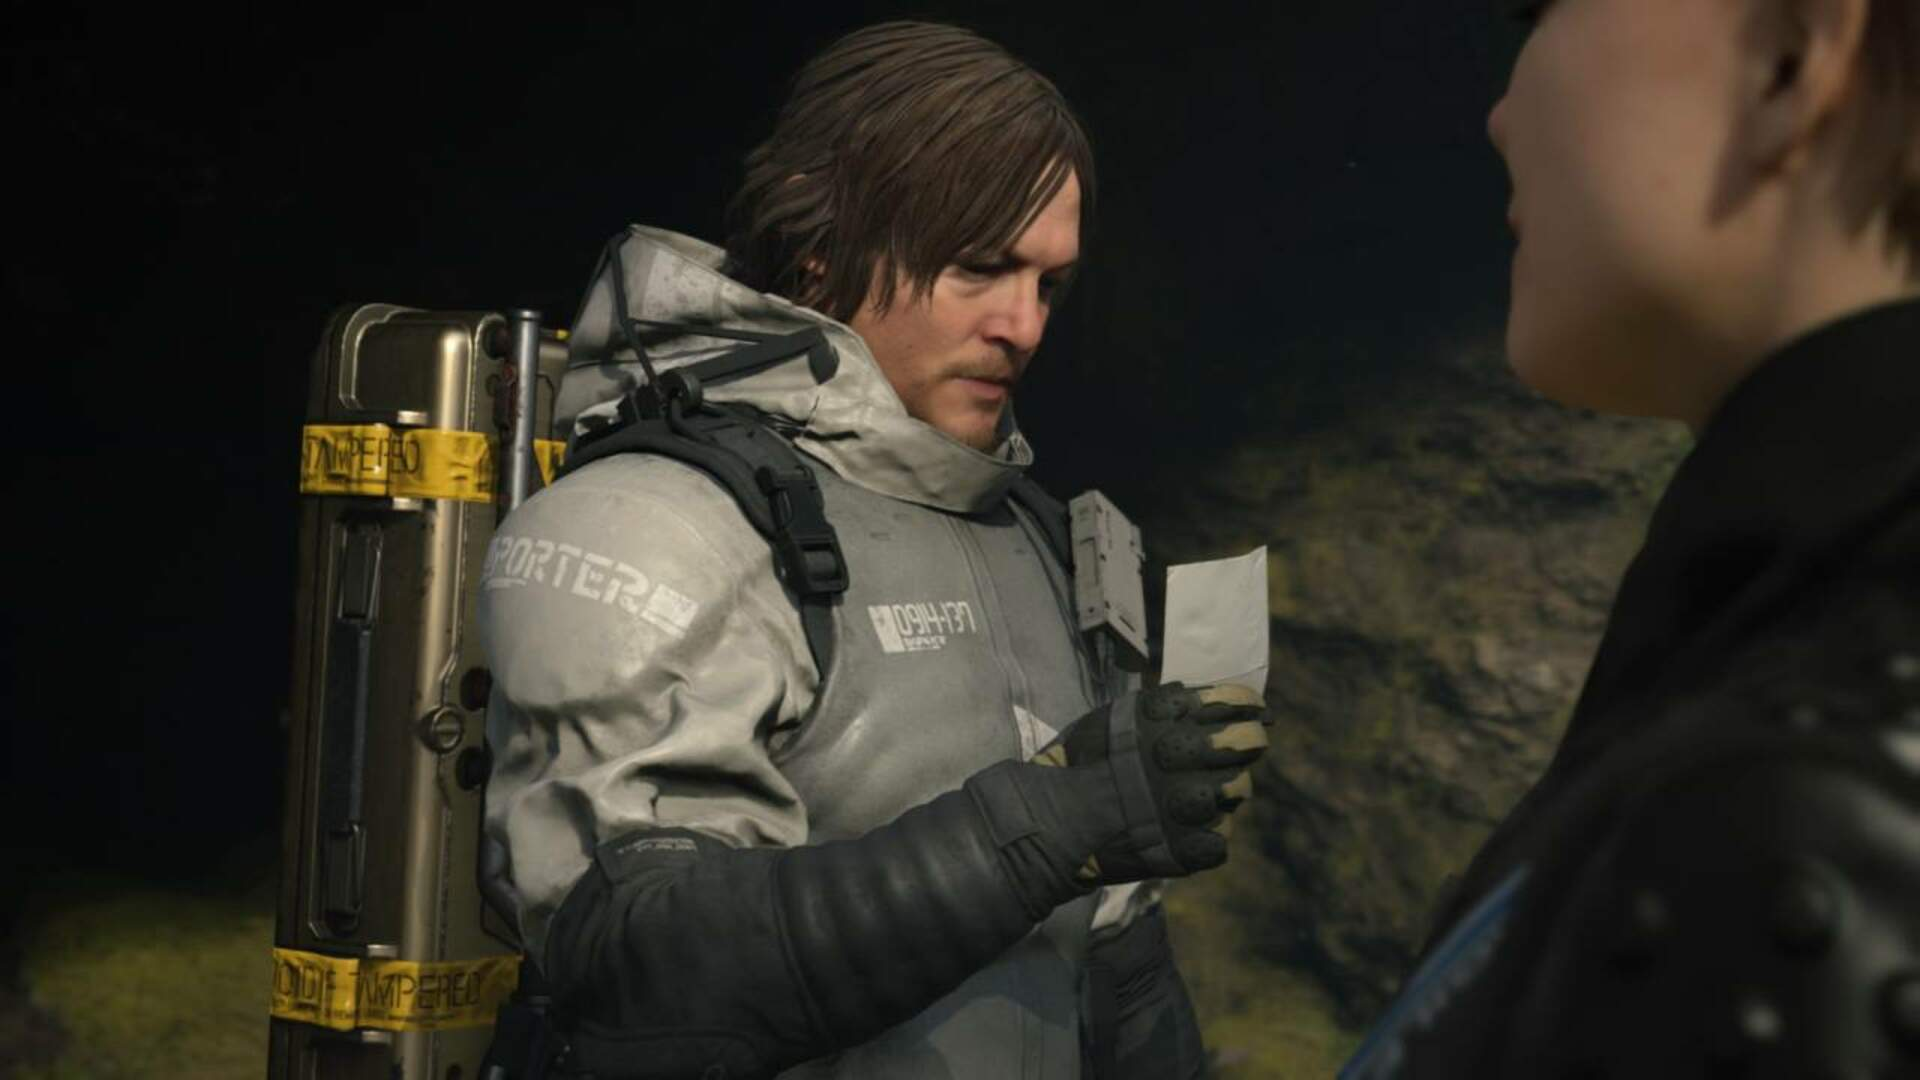 We Rewatched Death Stranding's Old Trailers and Now We Have a Bunch of New Theories